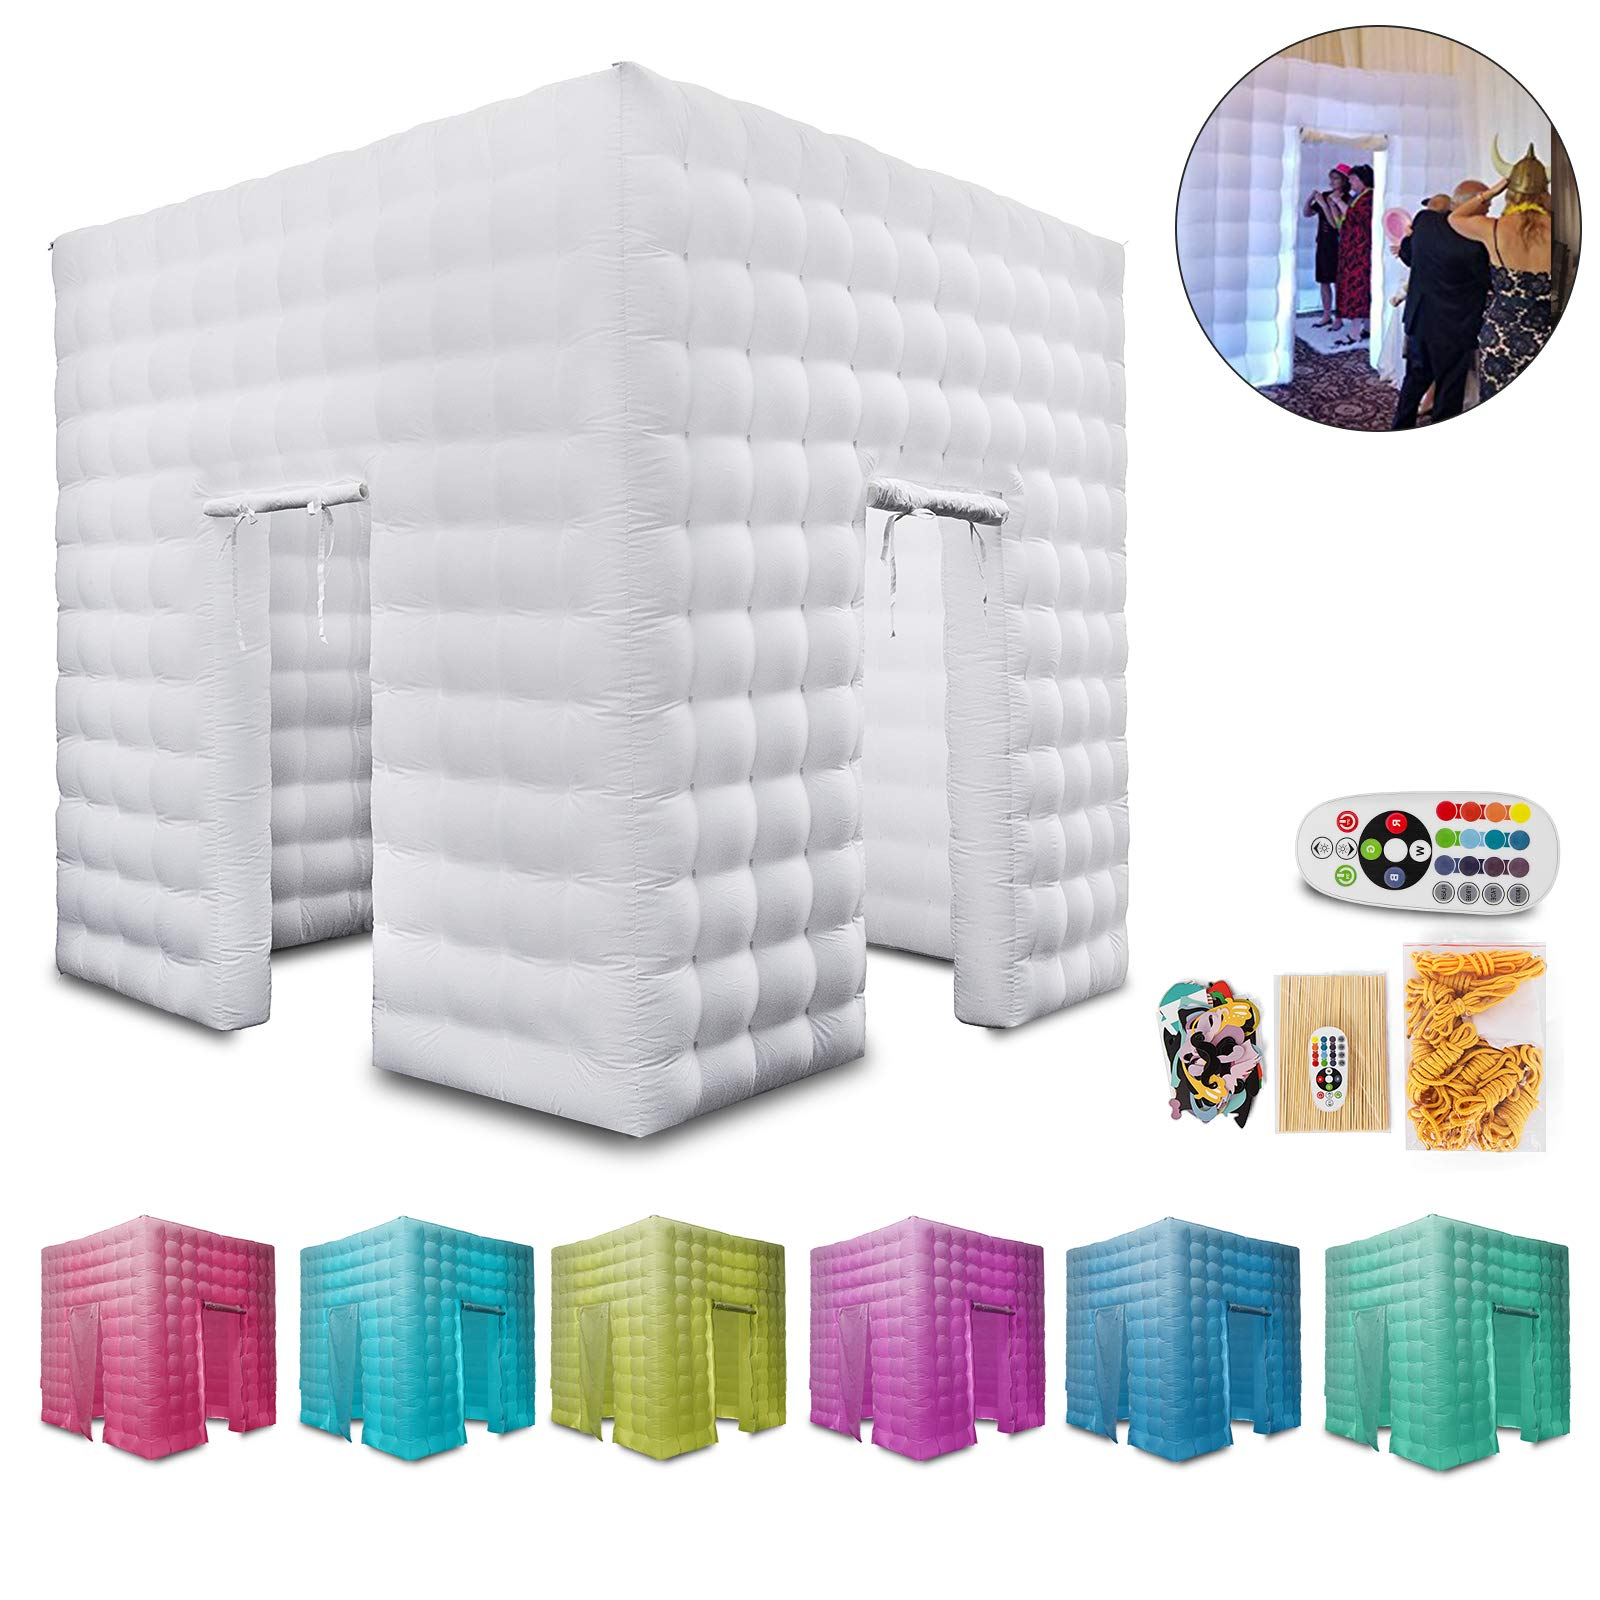 Happybuy 8.2X 8.2ft Inflatable Portable LED Lights Photo Booth 2 Doors W/Fan 110V US Plug by Happybuy (Image #1)